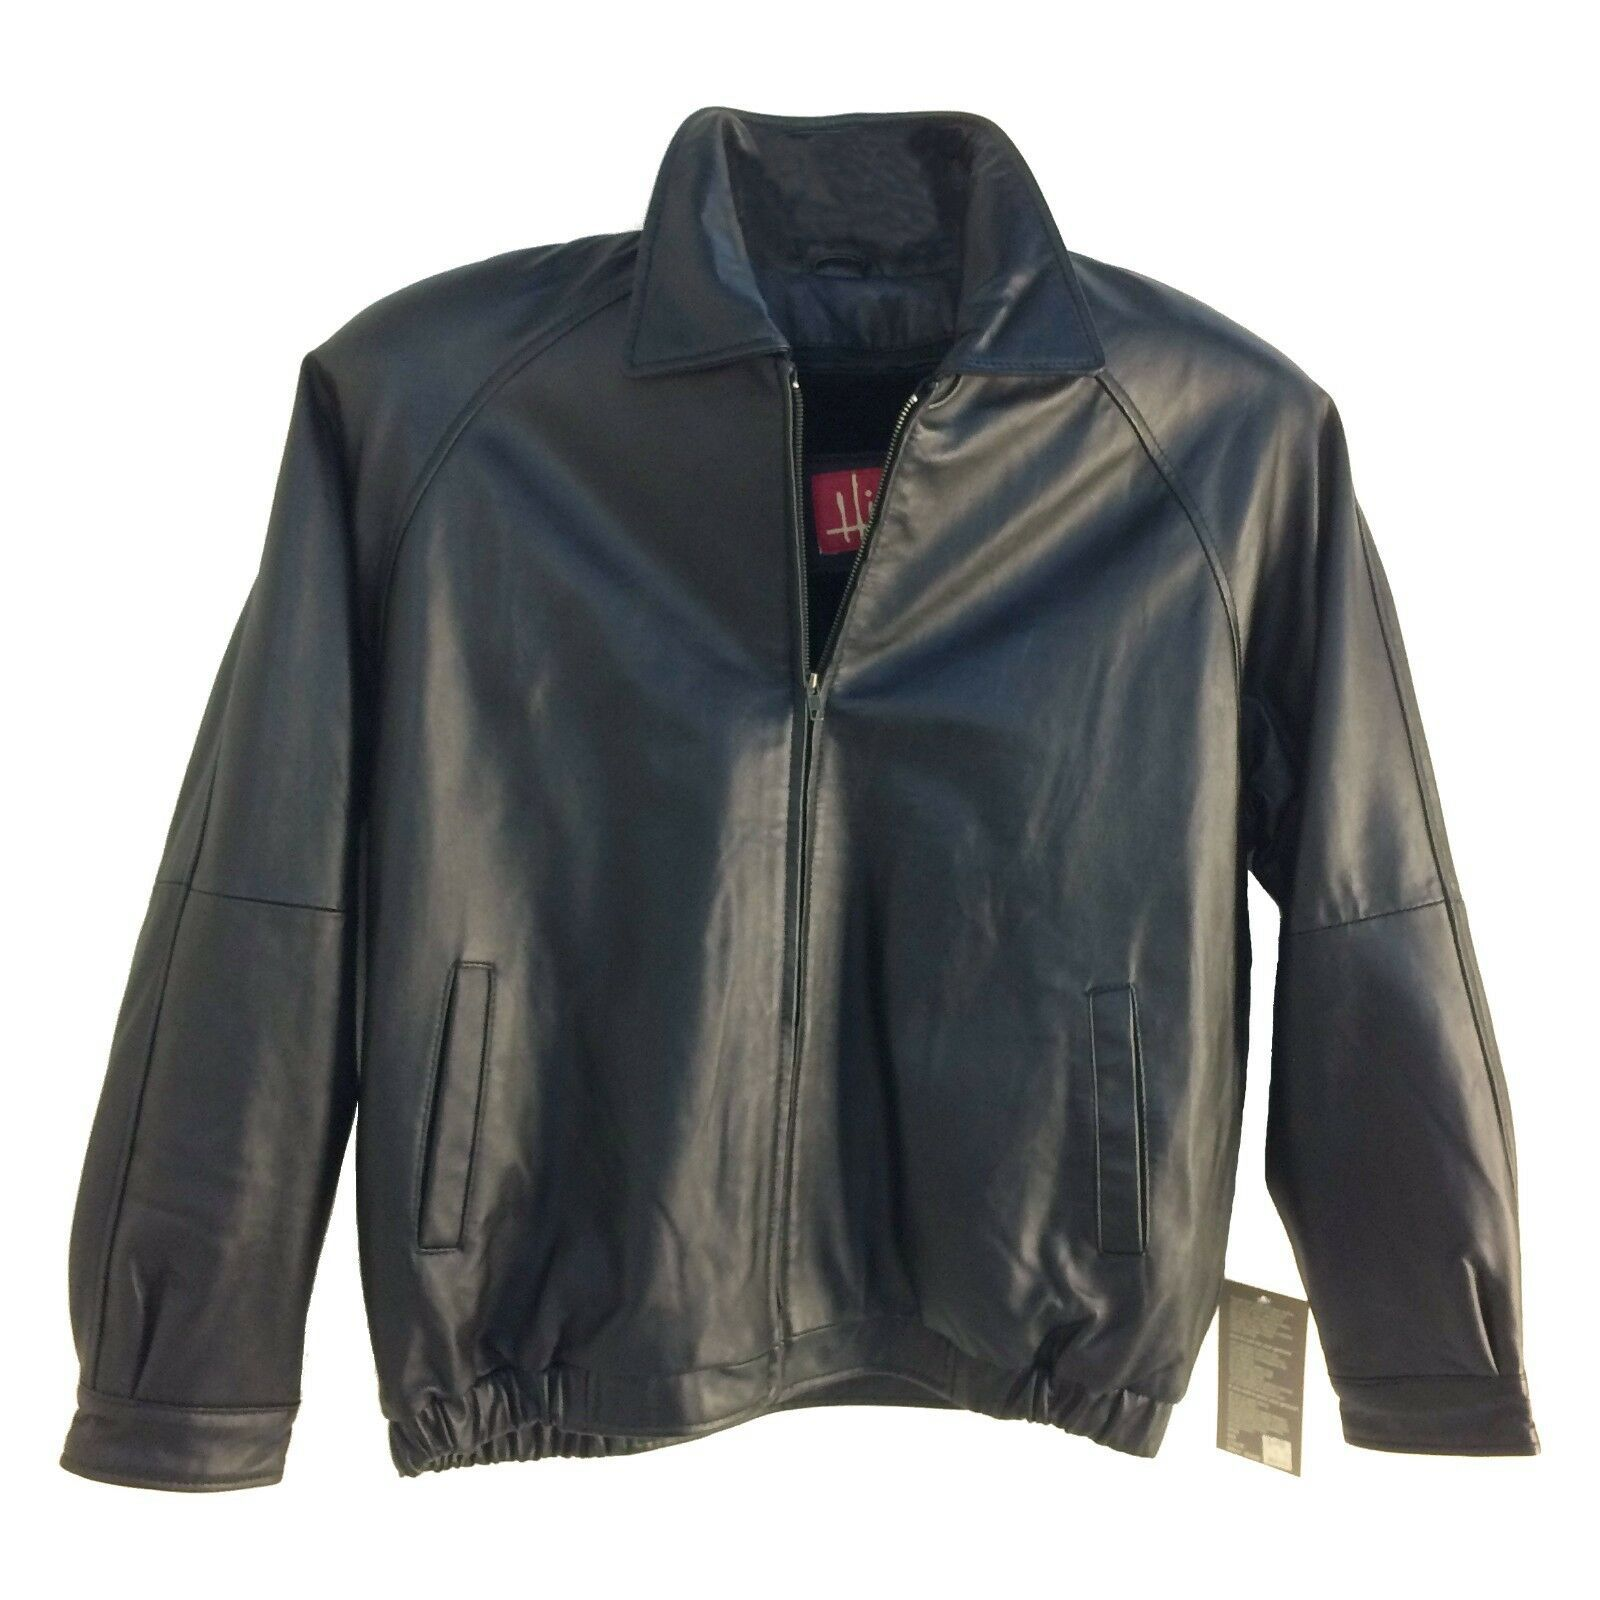 Assorted Brands ,Vintage, Men's Genuine Leather Bomber (Short) Jacket, Group-2